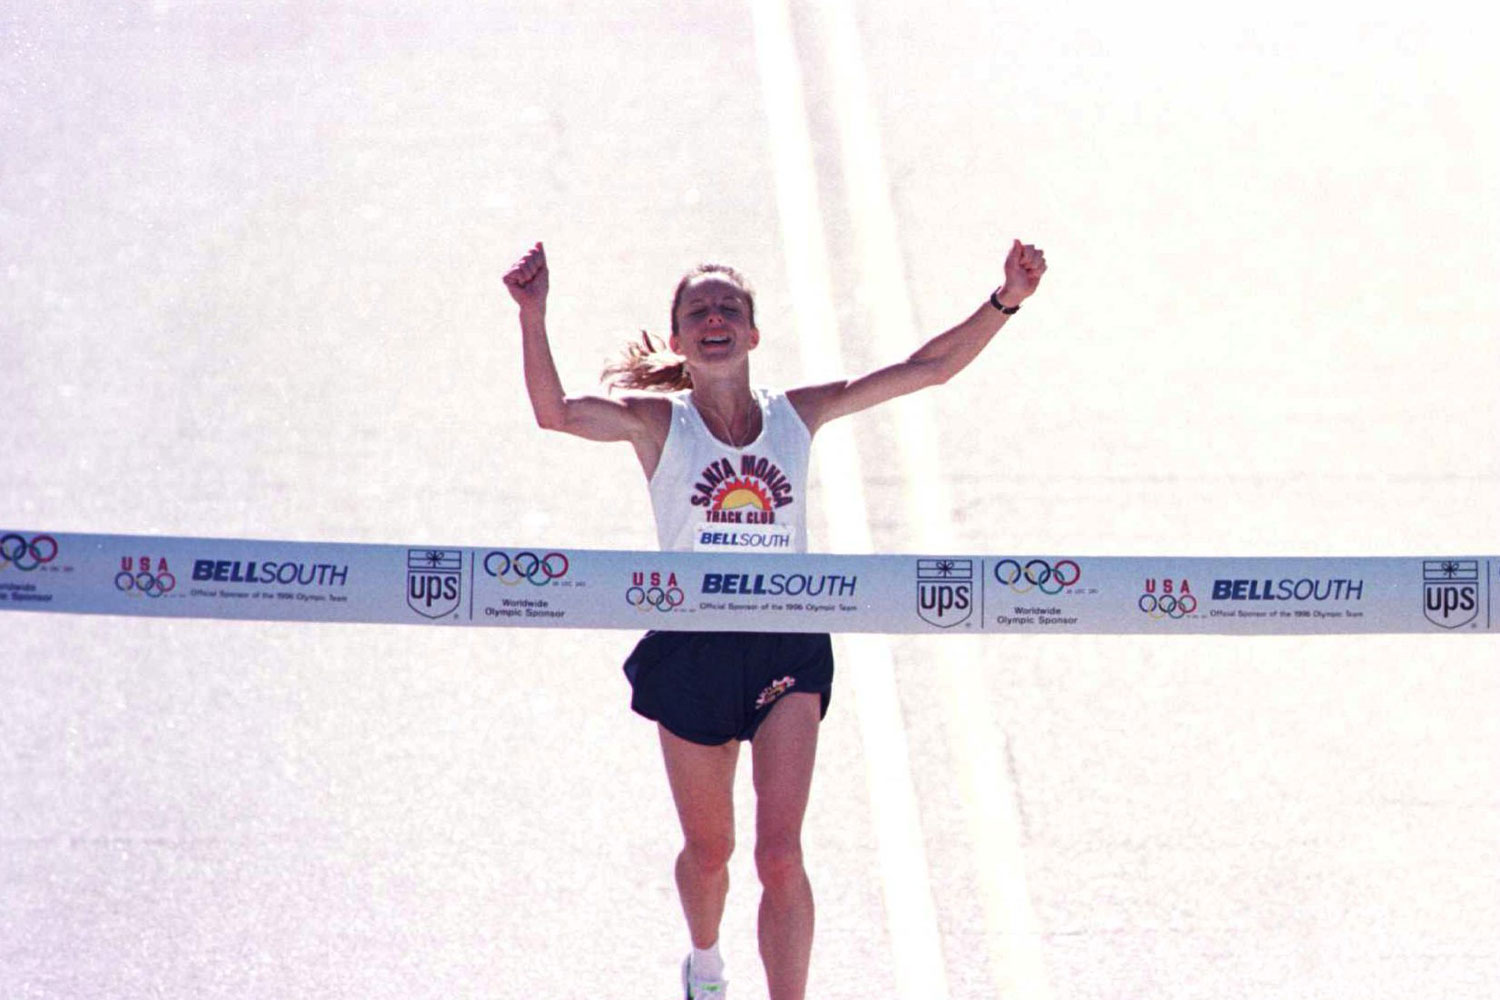 Jenny Spangler raises her hands in celebration just before crossing the finish line to win the 1996 Women's Olympic Marathon Time Trials held in Columbia, South Carolina.